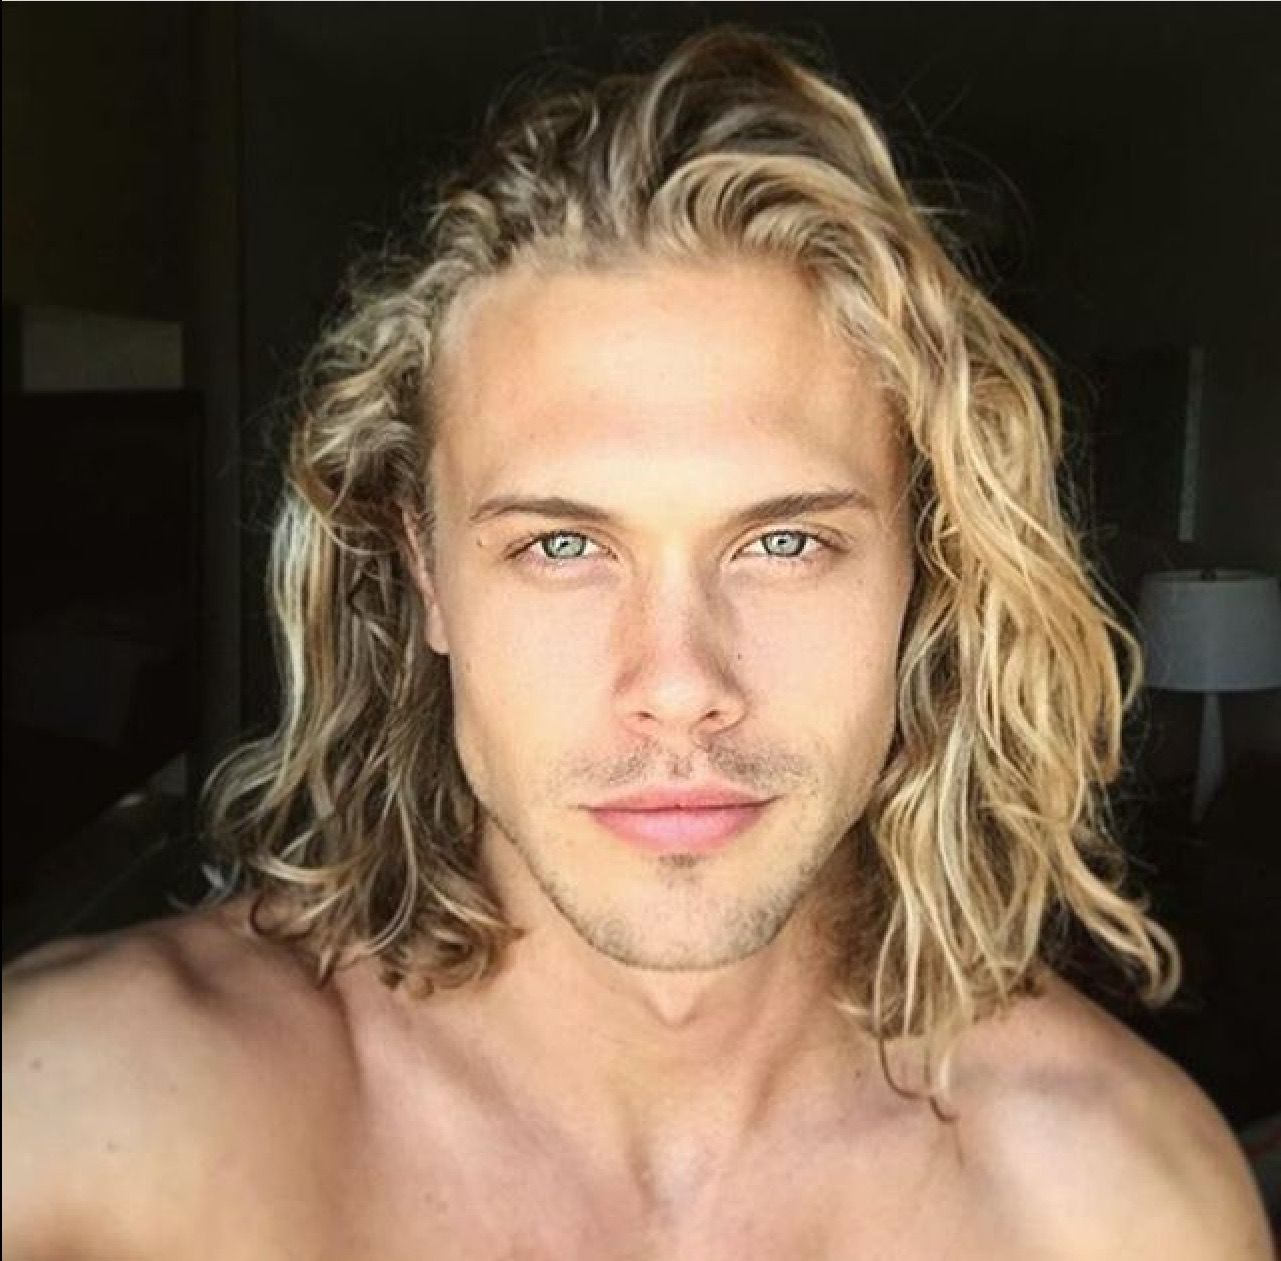 Haircuts men long pin by mcklyn valenciano on grooming  pinterest  hair style